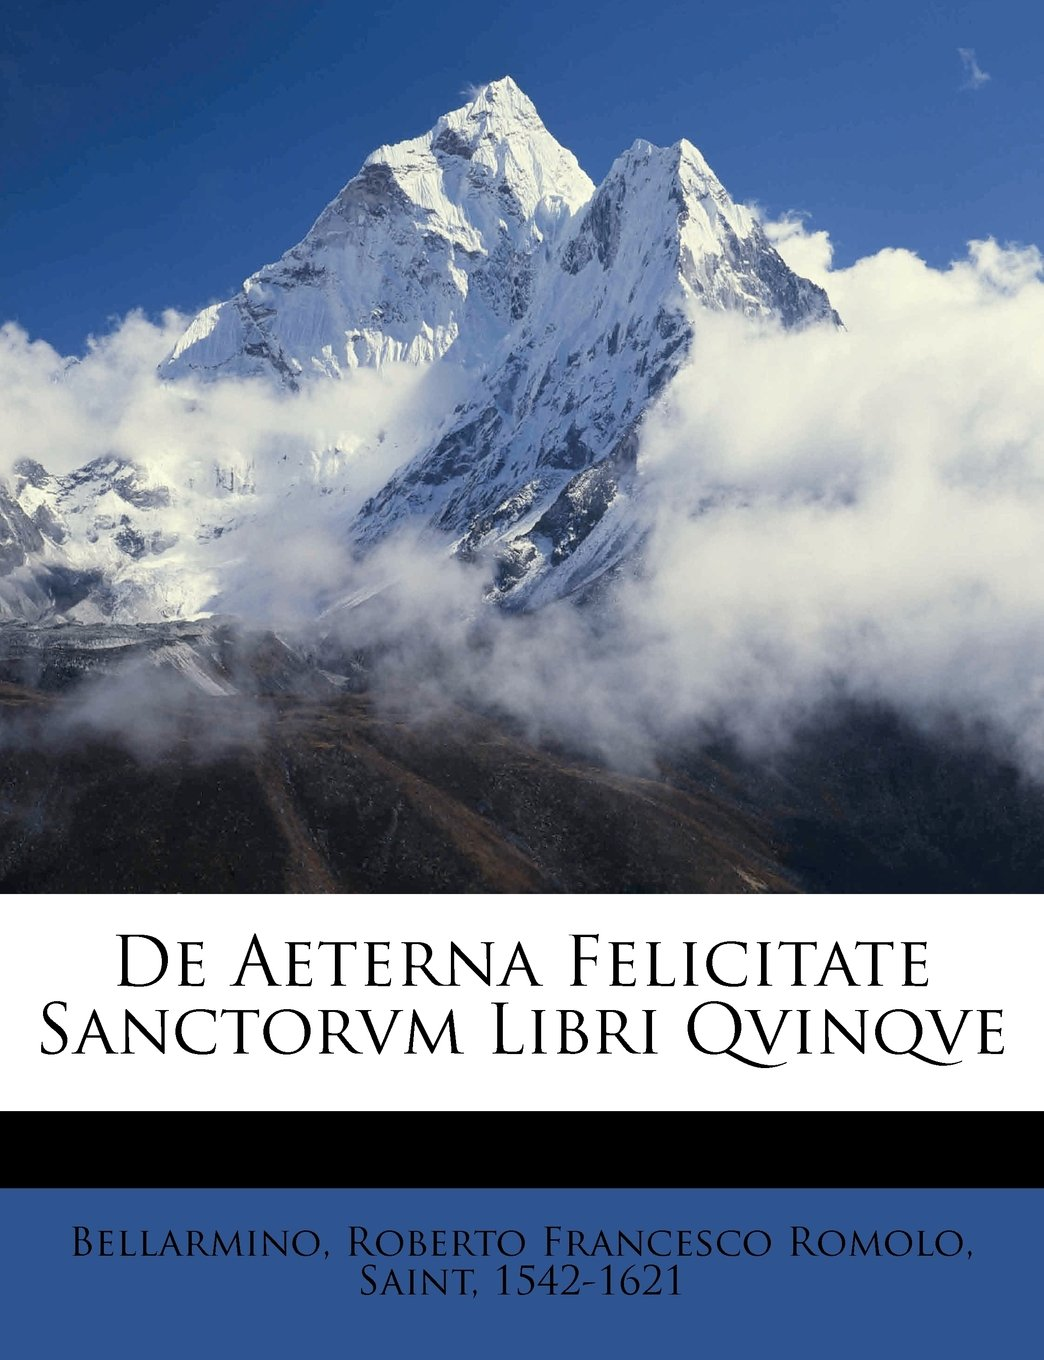 Read Online De Aeterna Felicitate Sanctorvm Libri Qvinqve (French Edition) pdf epub